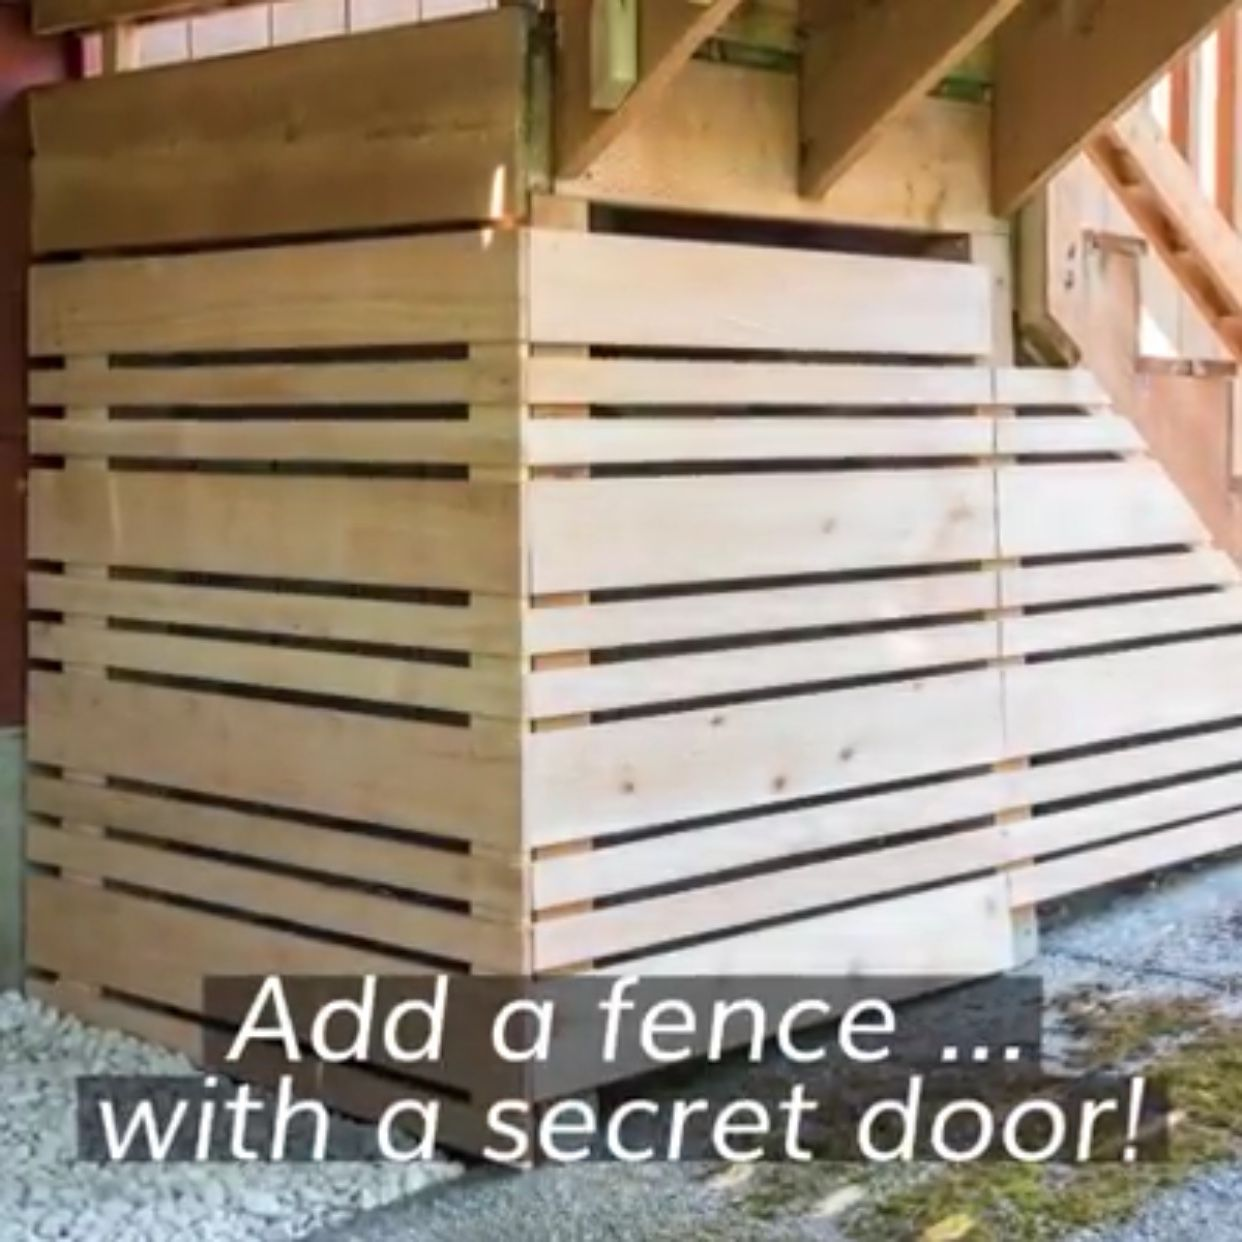 More Modern Enclosure For Under Deck Space In 2020 Under Deck Storage Deck Storage Diy Deck